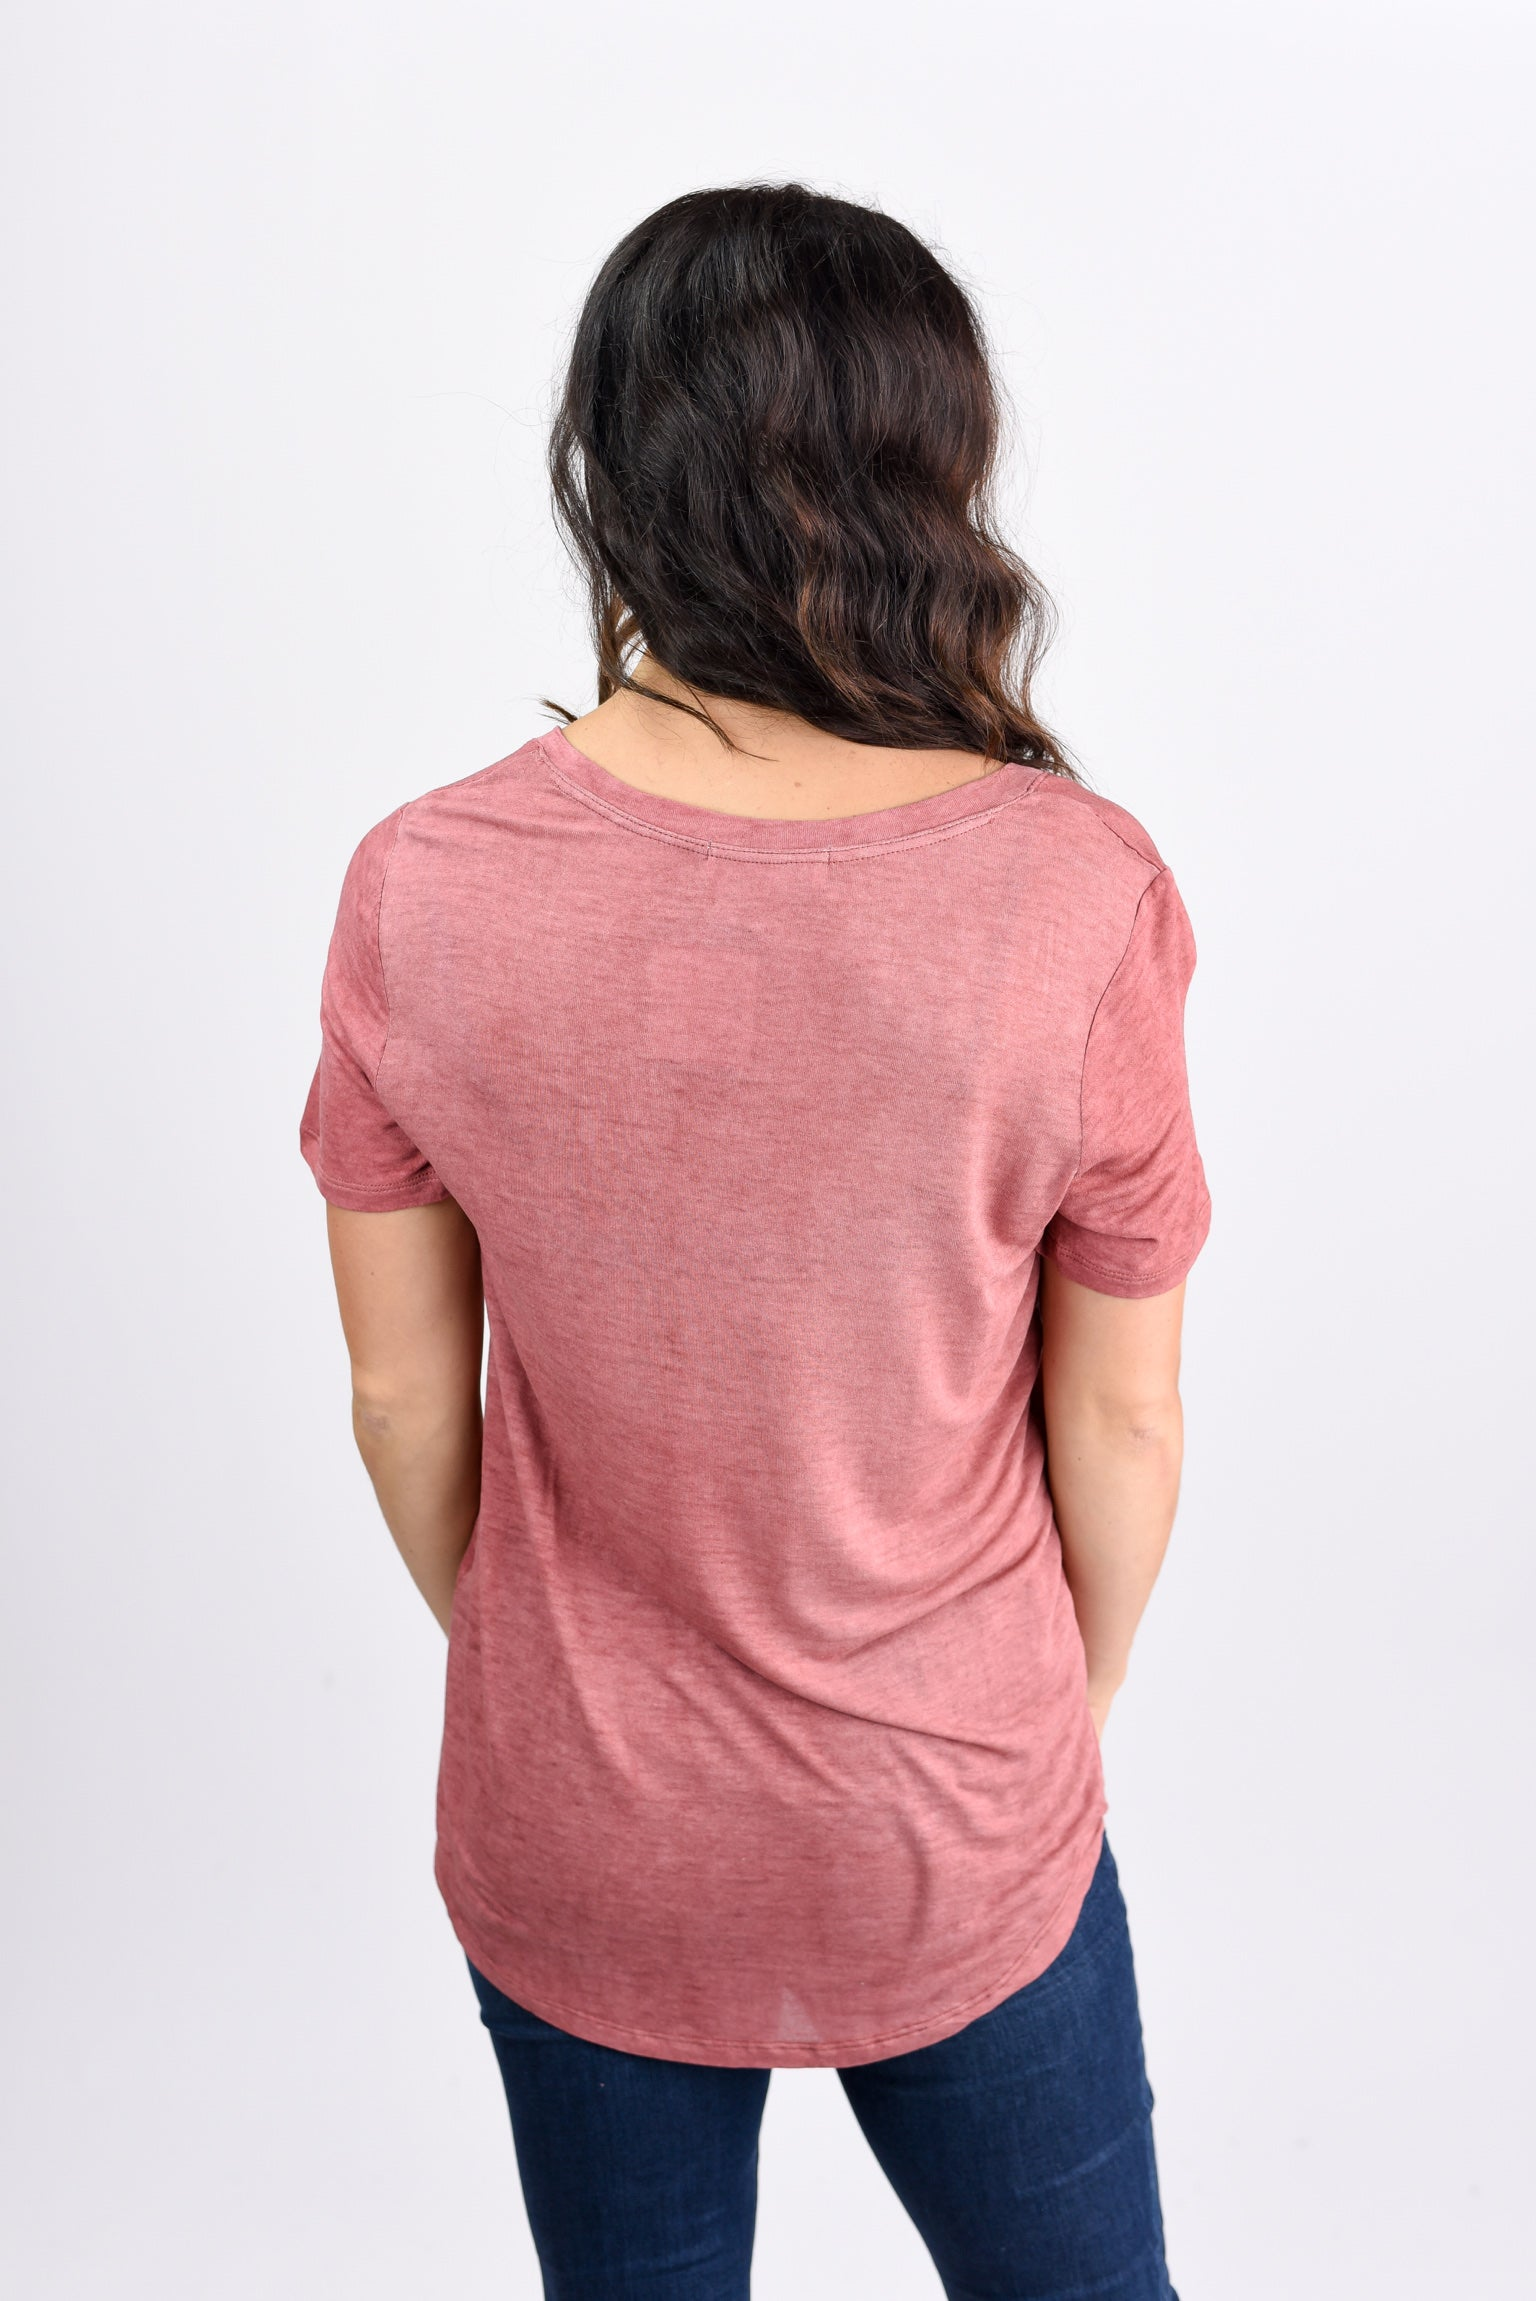 Just My Type Salmon V-neck Lightweight Tee